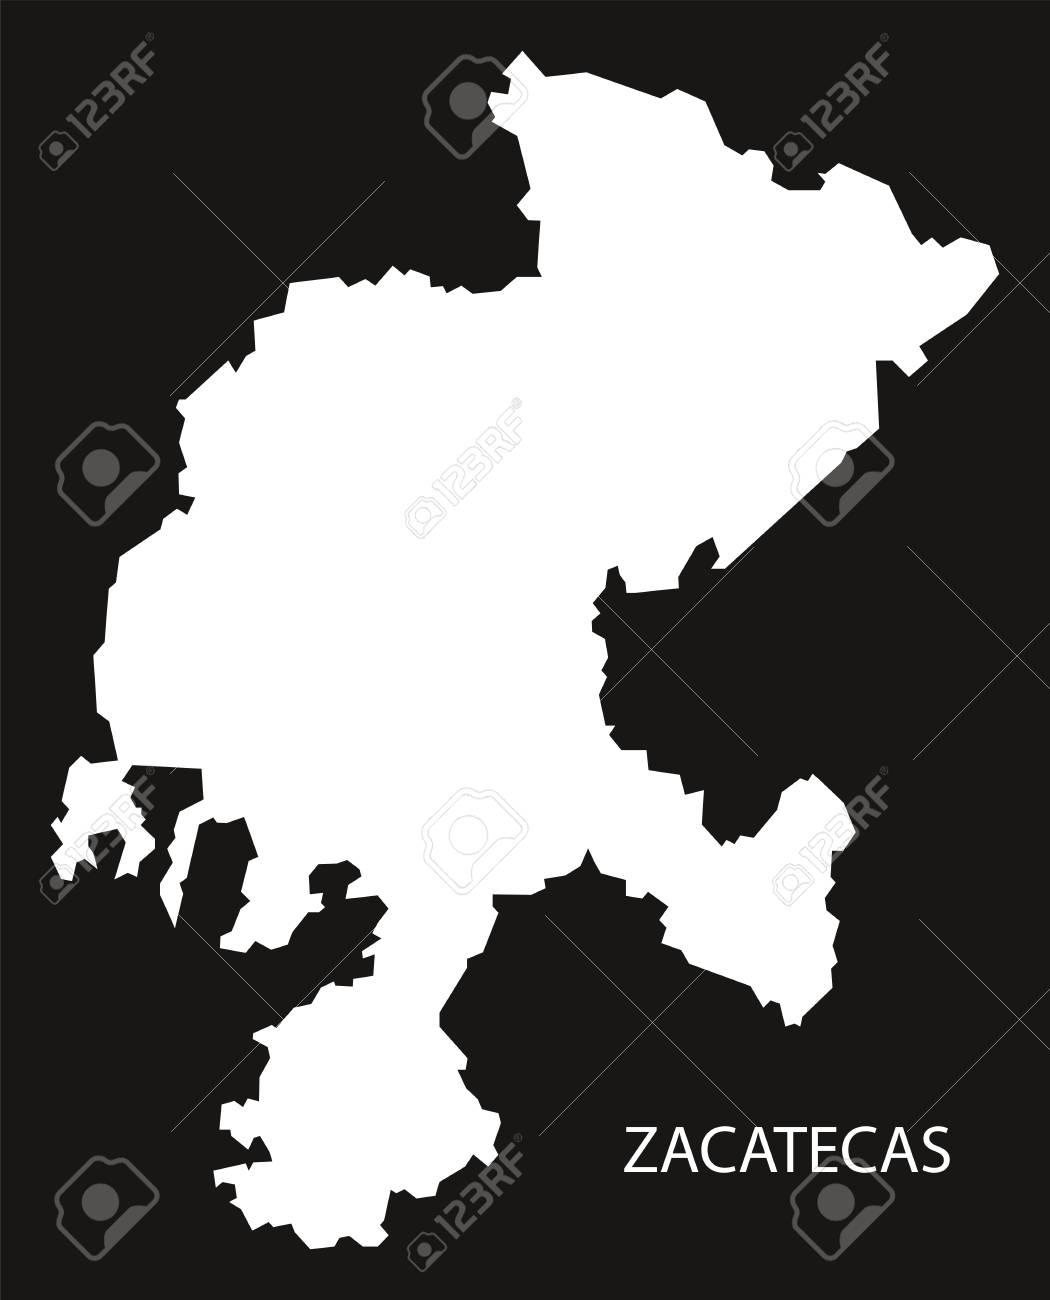 Zacatecas Mexico Map Black Inverted Silhouette Royalty Free